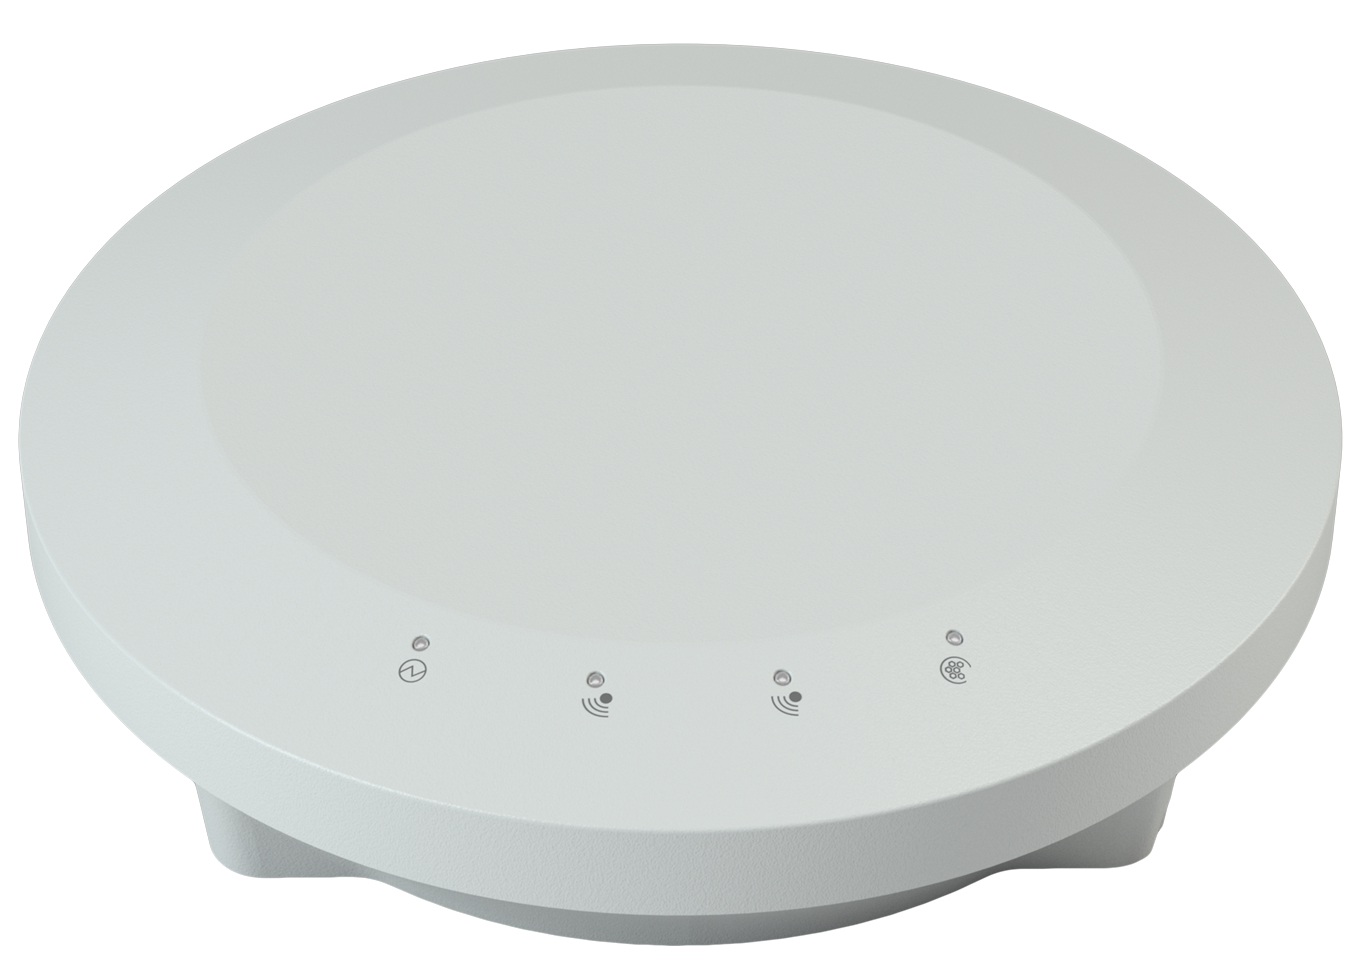 Extreme networks WiNG AP 7632 WLAN access point 867 Mbit/s Power over Ethernet (PoE) White